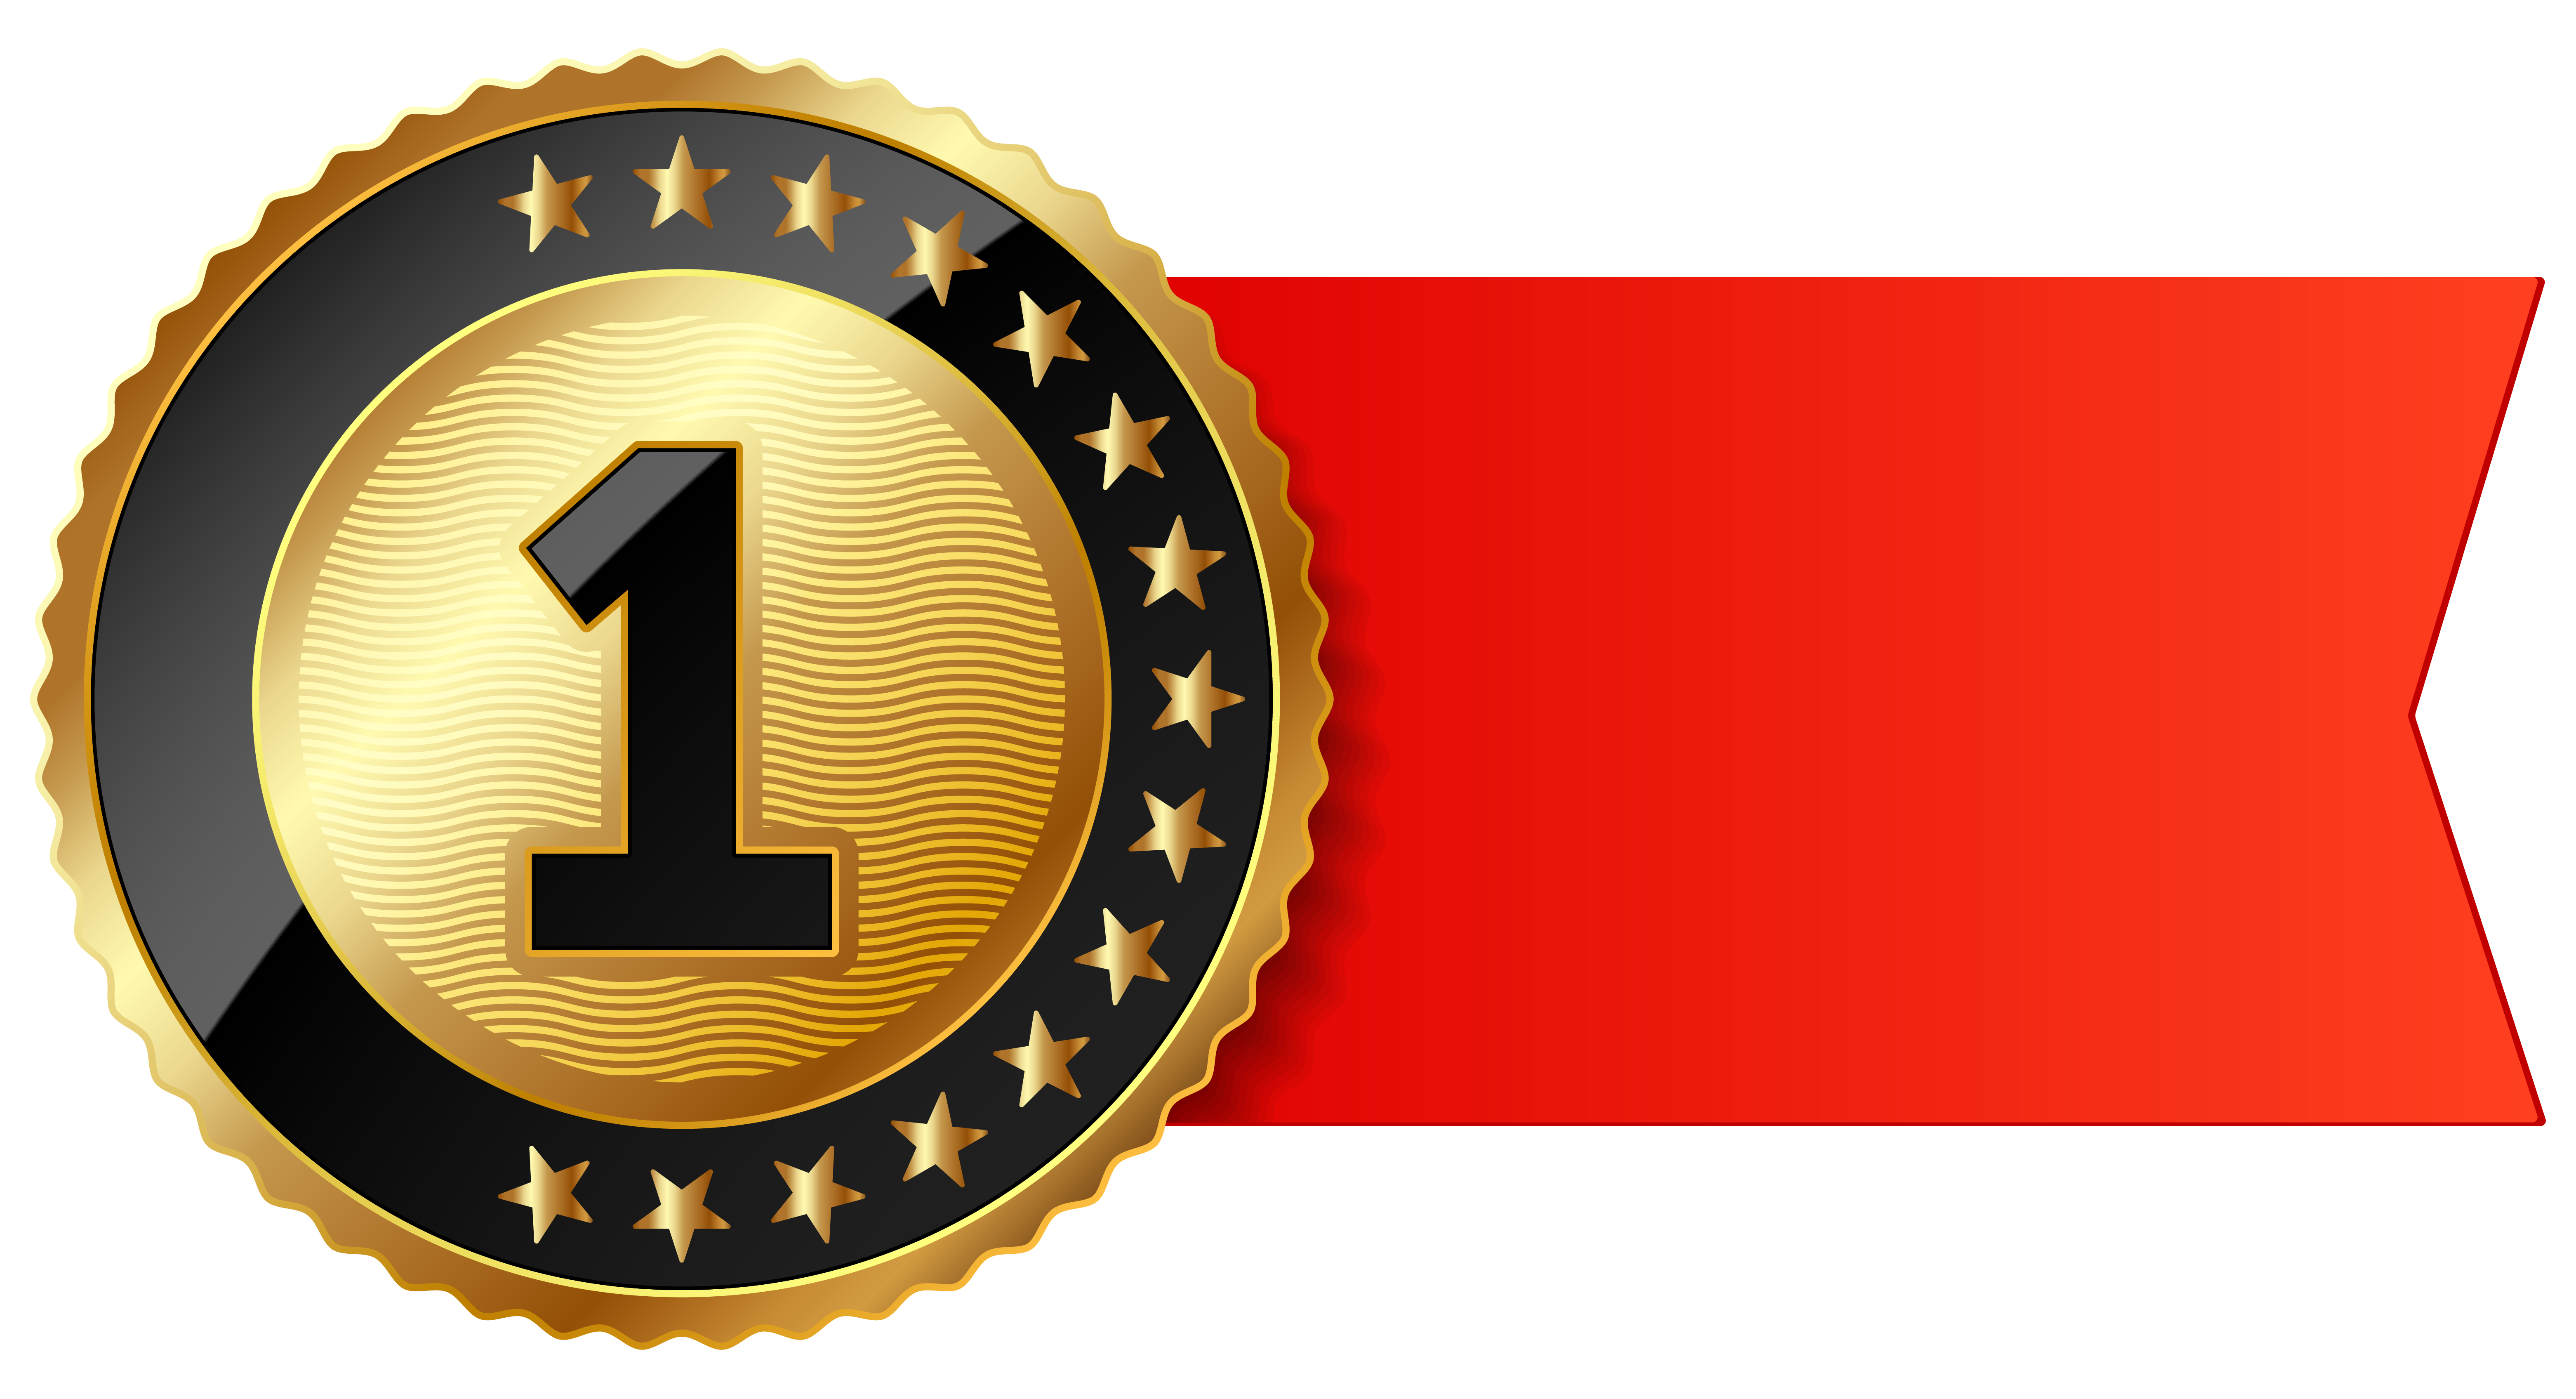 1st place ribbon png. First clipart image gallery